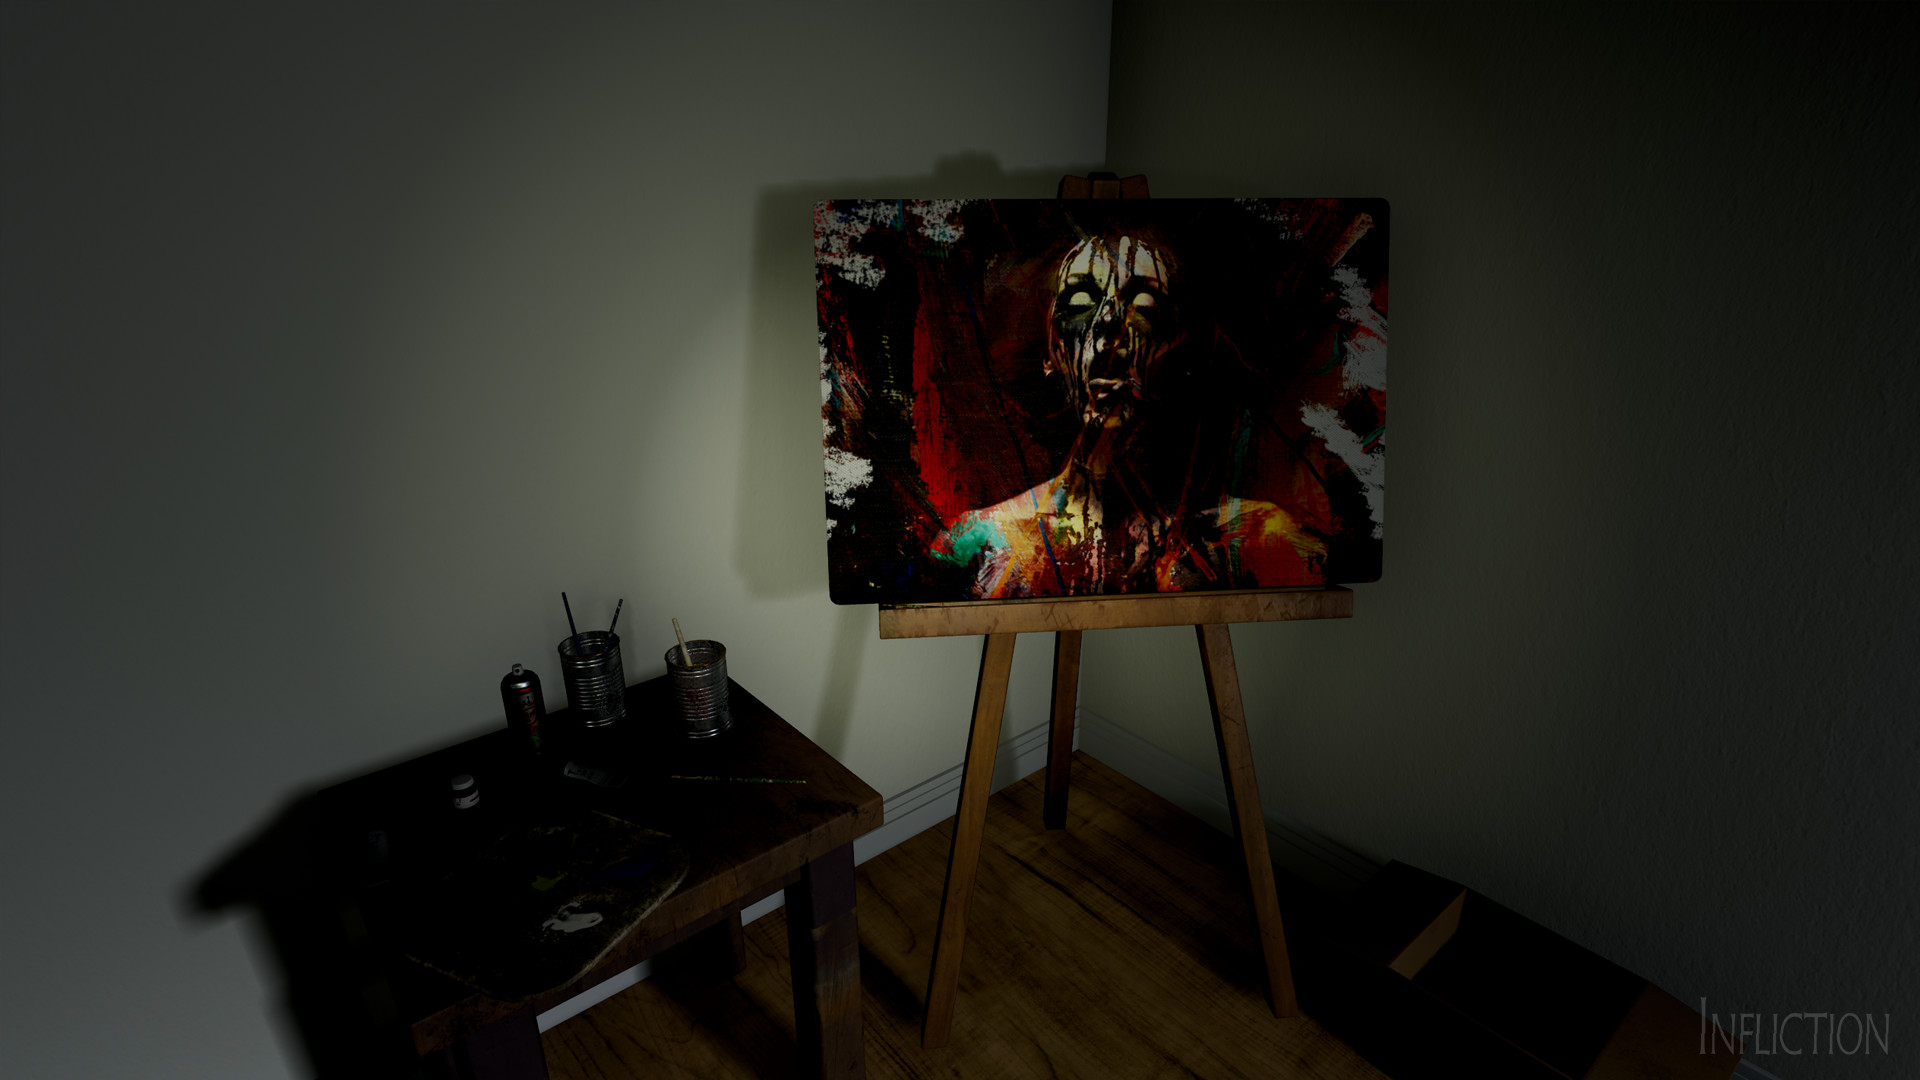 Infliction Haunts Switch in Q4 2019